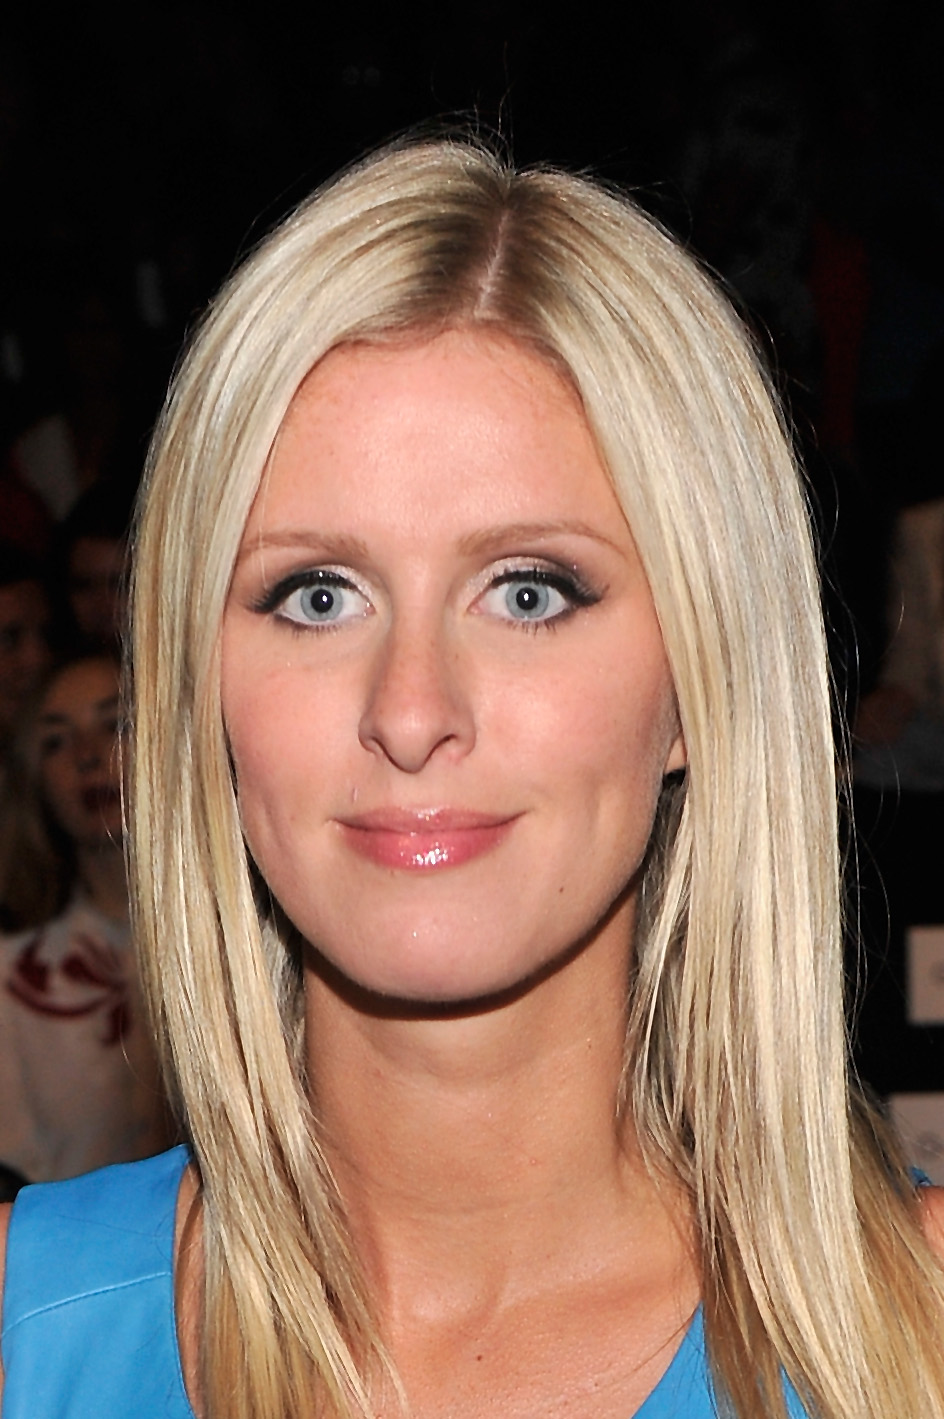 Nicky Hilton attends the Rebecca Minkoff Spring 2014 Runway Show